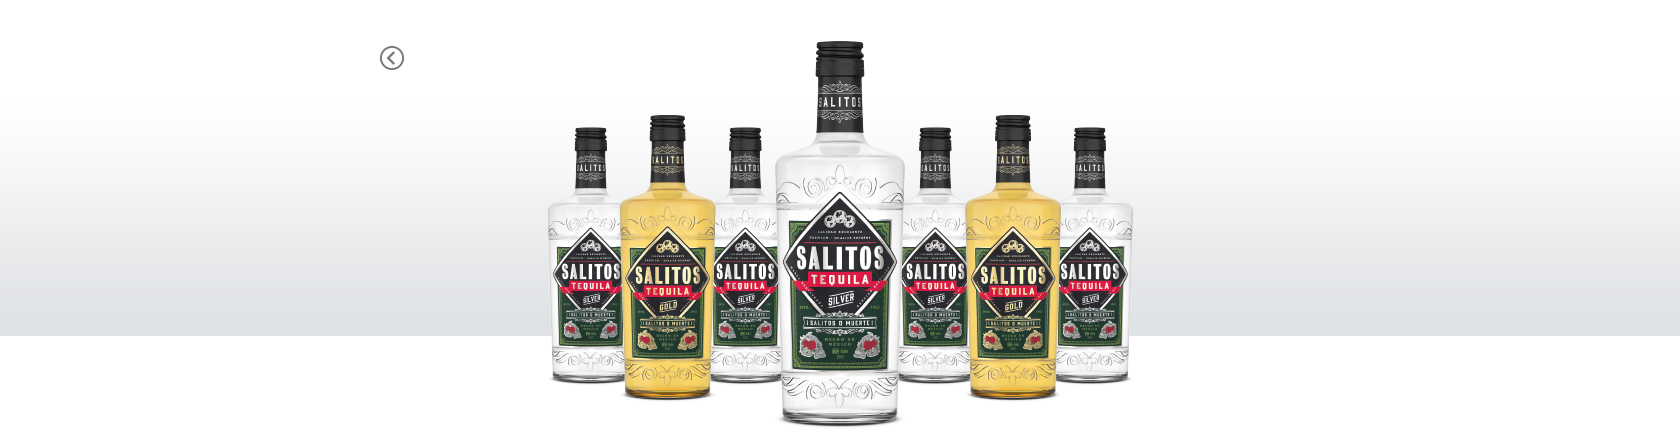 MBG_Website_Template_Produkt-1680x446_Salitos_Tequila_Spirit